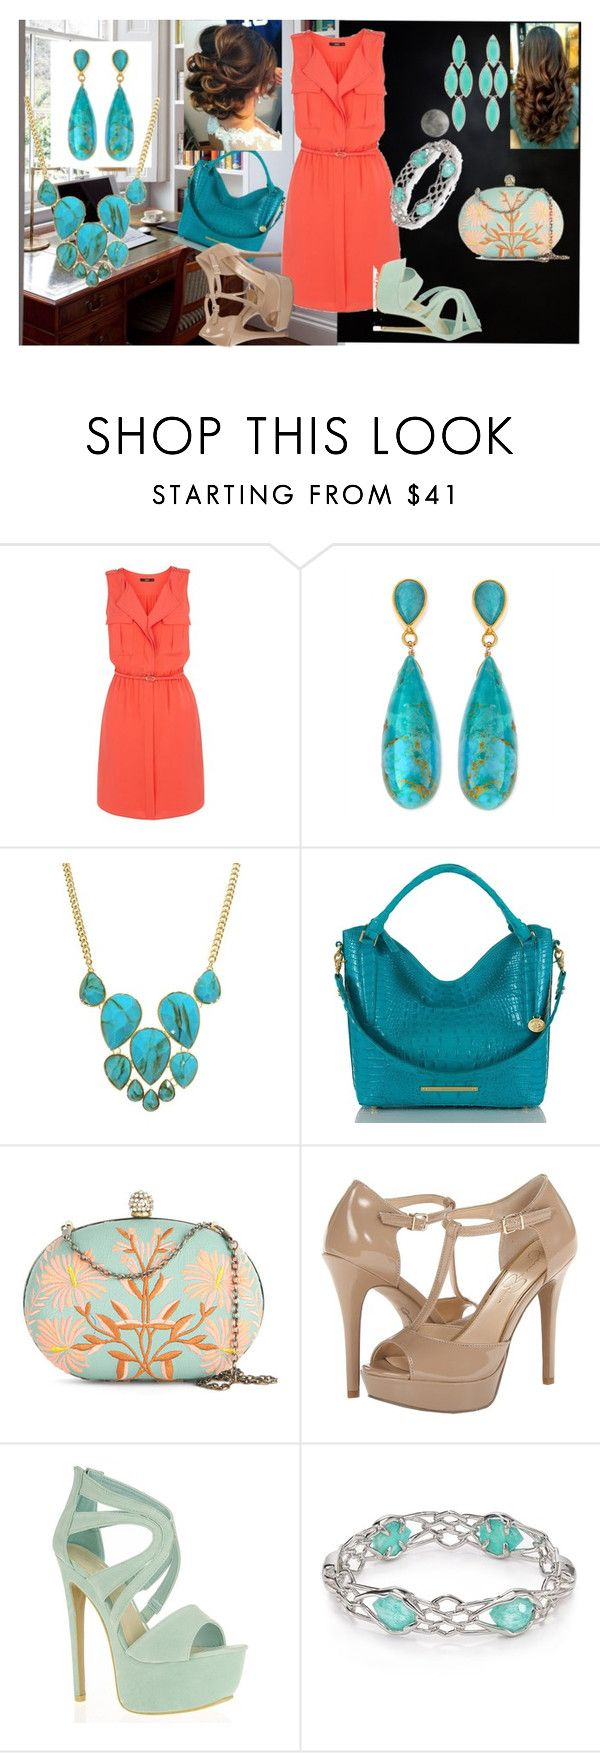 """""""Untitled #49"""" by lemcelfresh ❤ liked on Polyvore featuring Oasis, Dina Mackney, Jules Smith, Brahmin, Darling, Jessica Simpson, Quiz, Alexis Bittar, Kendra Scott and shirtdress"""